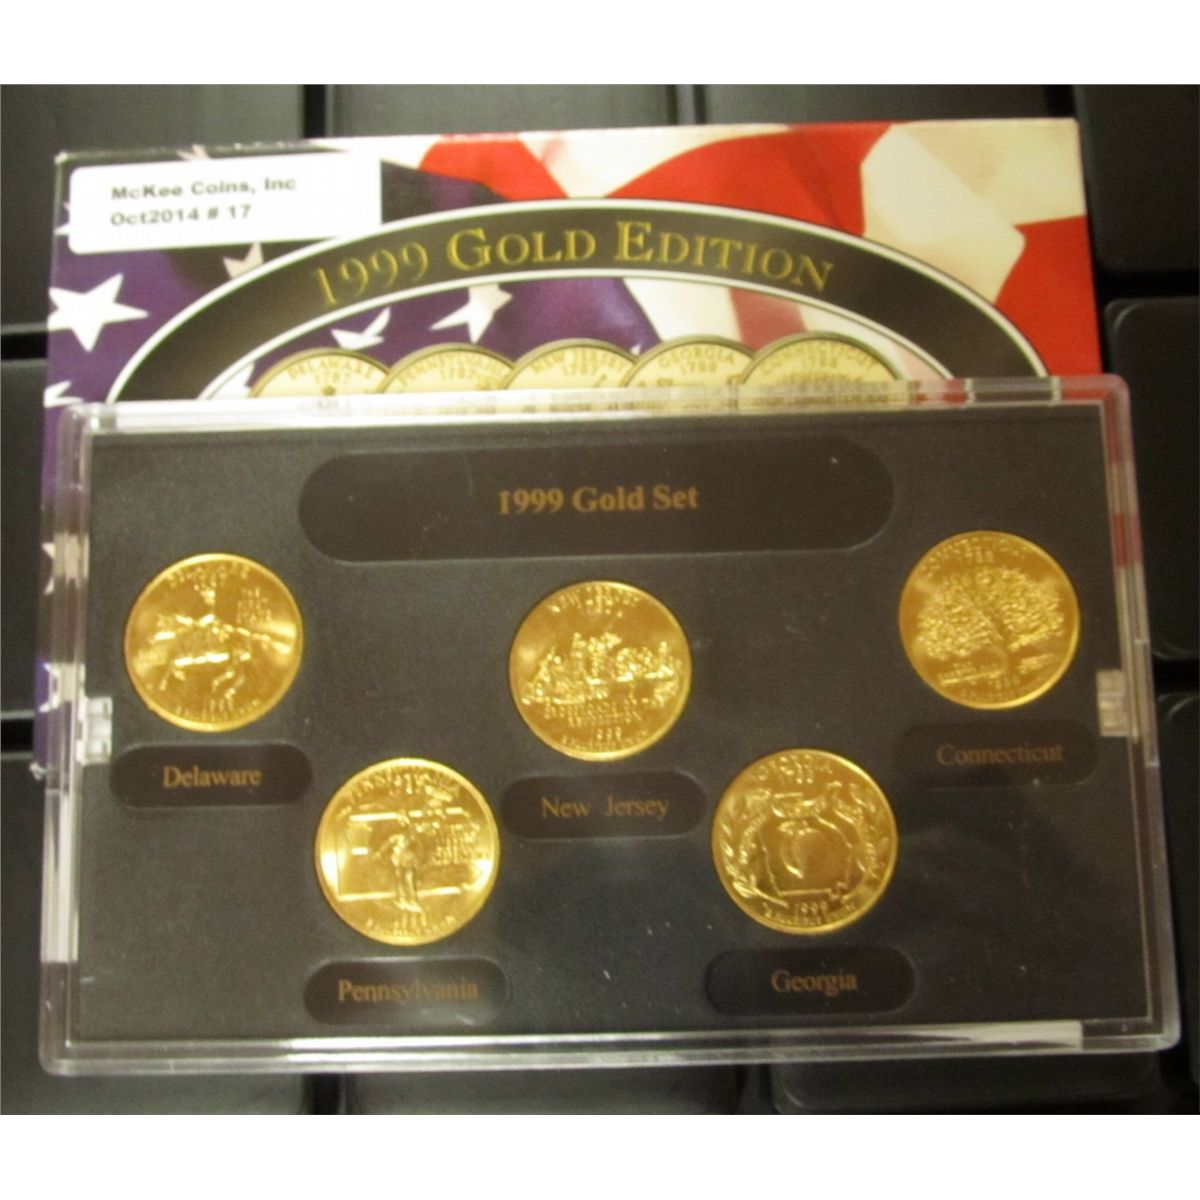 2007 gold edition state quarter collection   property room.